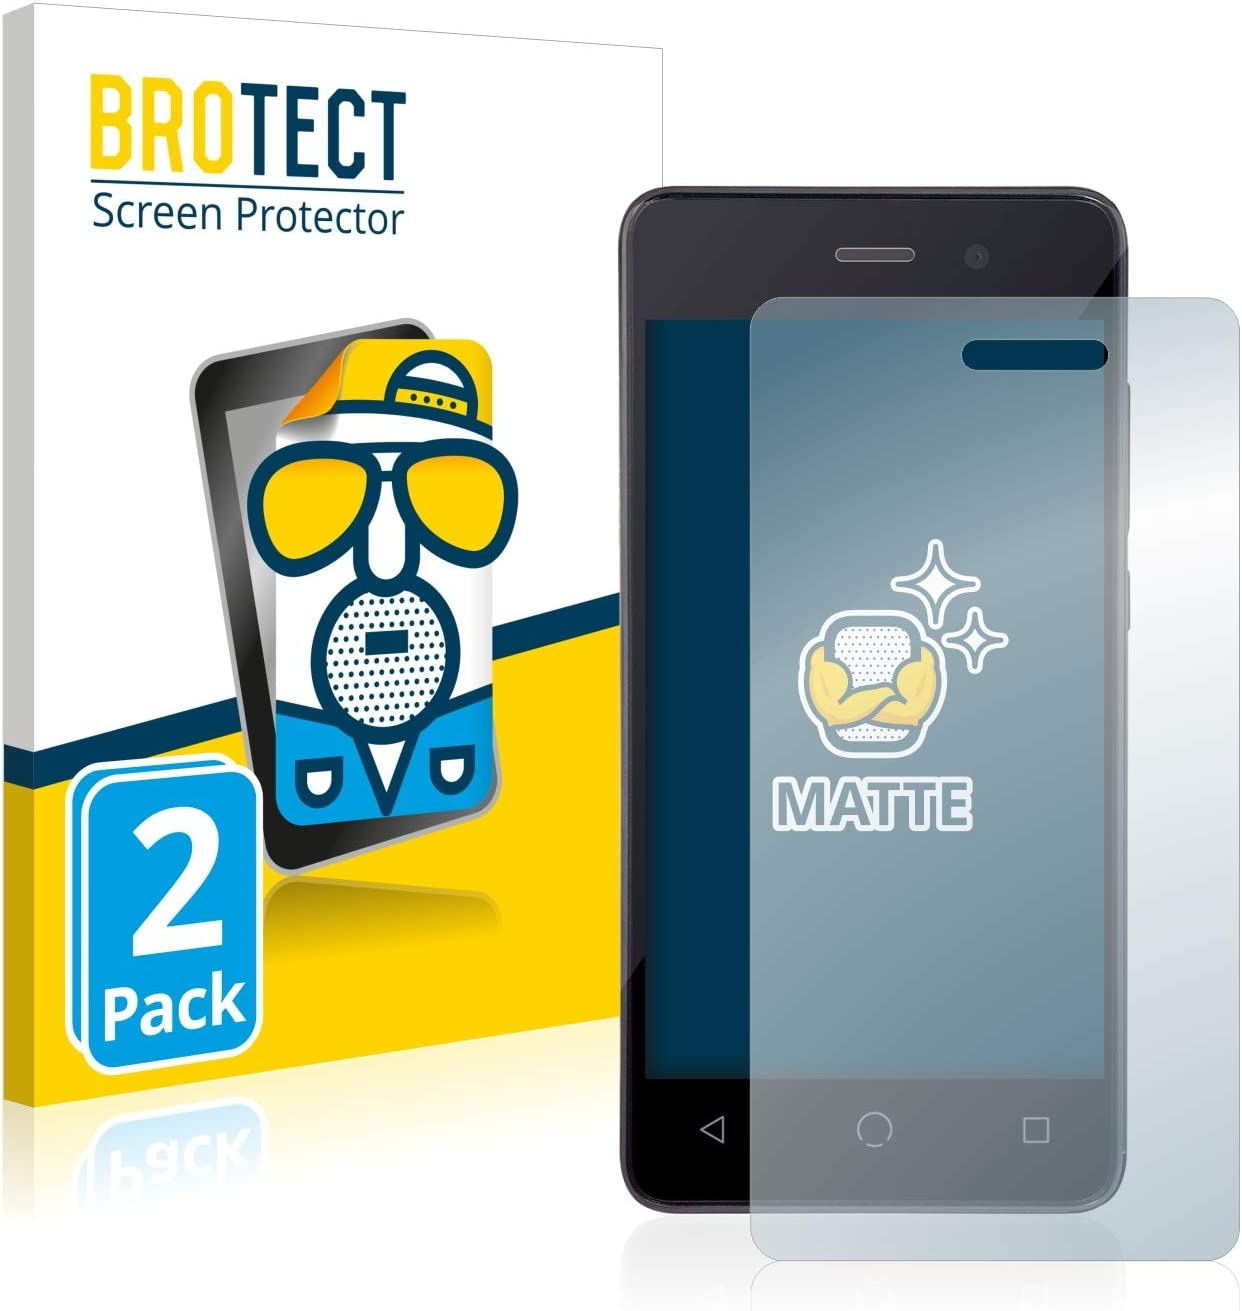 BROTECT. Easy-to-use 2X Matte Screen Protector for Anti Omnipod Quantity limited Dash